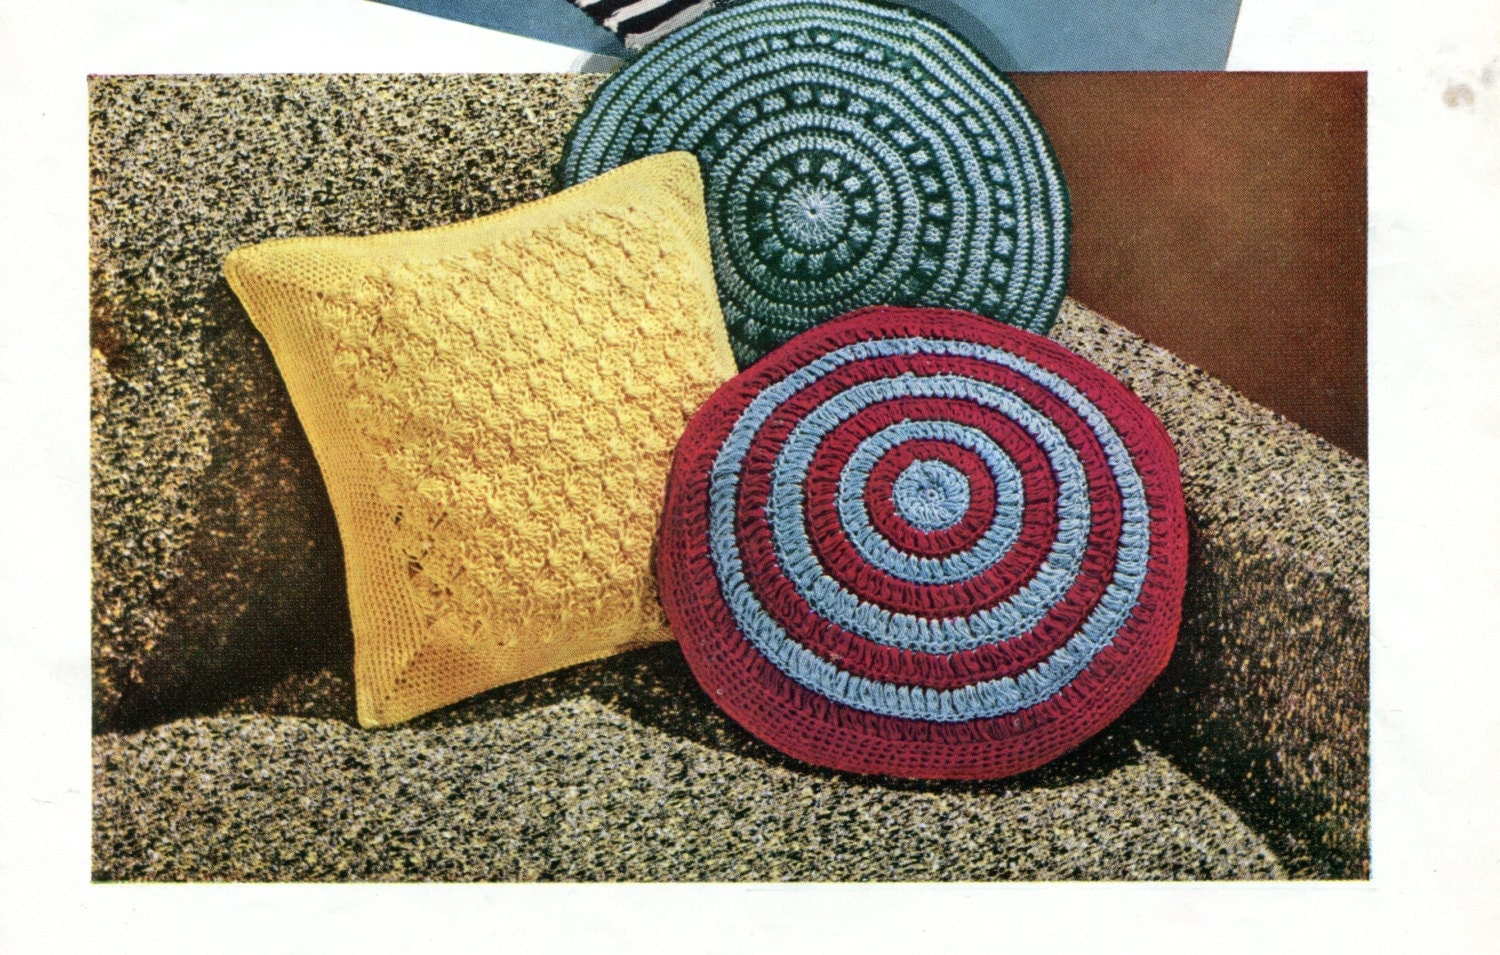 Mid Century Modern Pillows Etsy : 1960 s Vintage Crocheted Mid Century Modern Pillows Pattern Instant Download PDF from ...